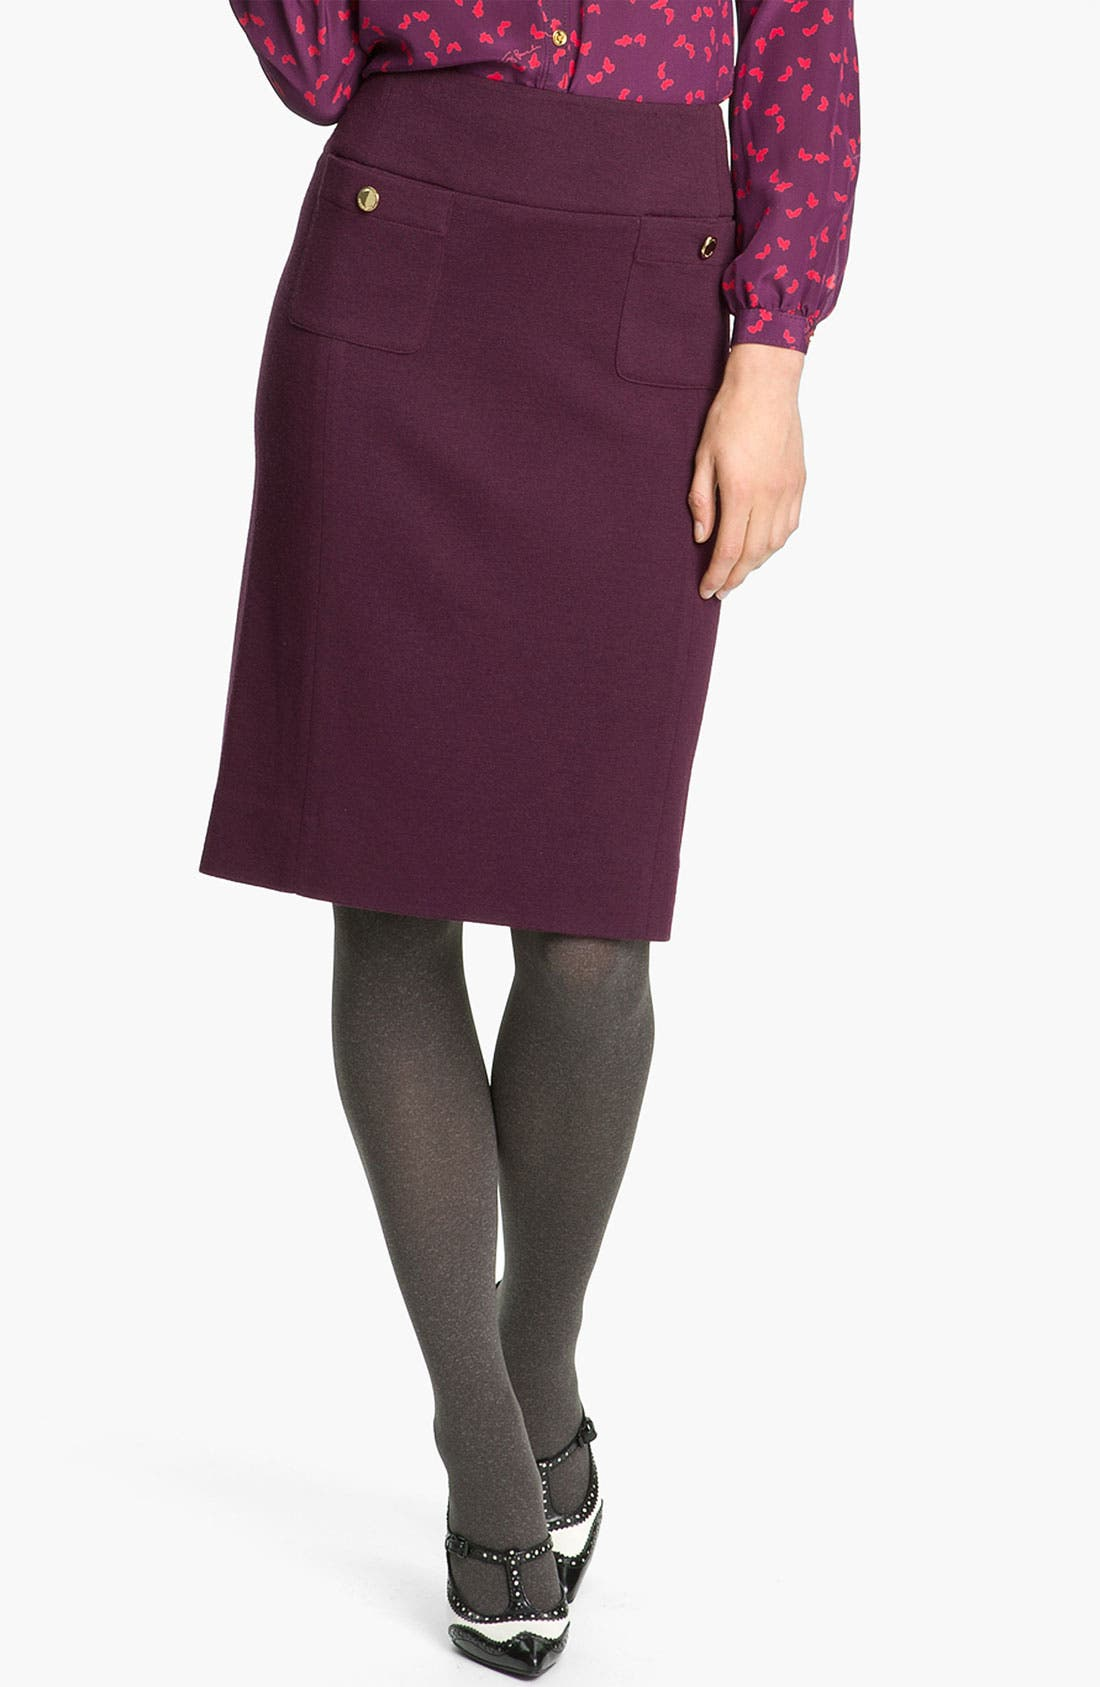 Alternate Image 1 Selected - Tory Burch 'Anthea' Pencil Skirt